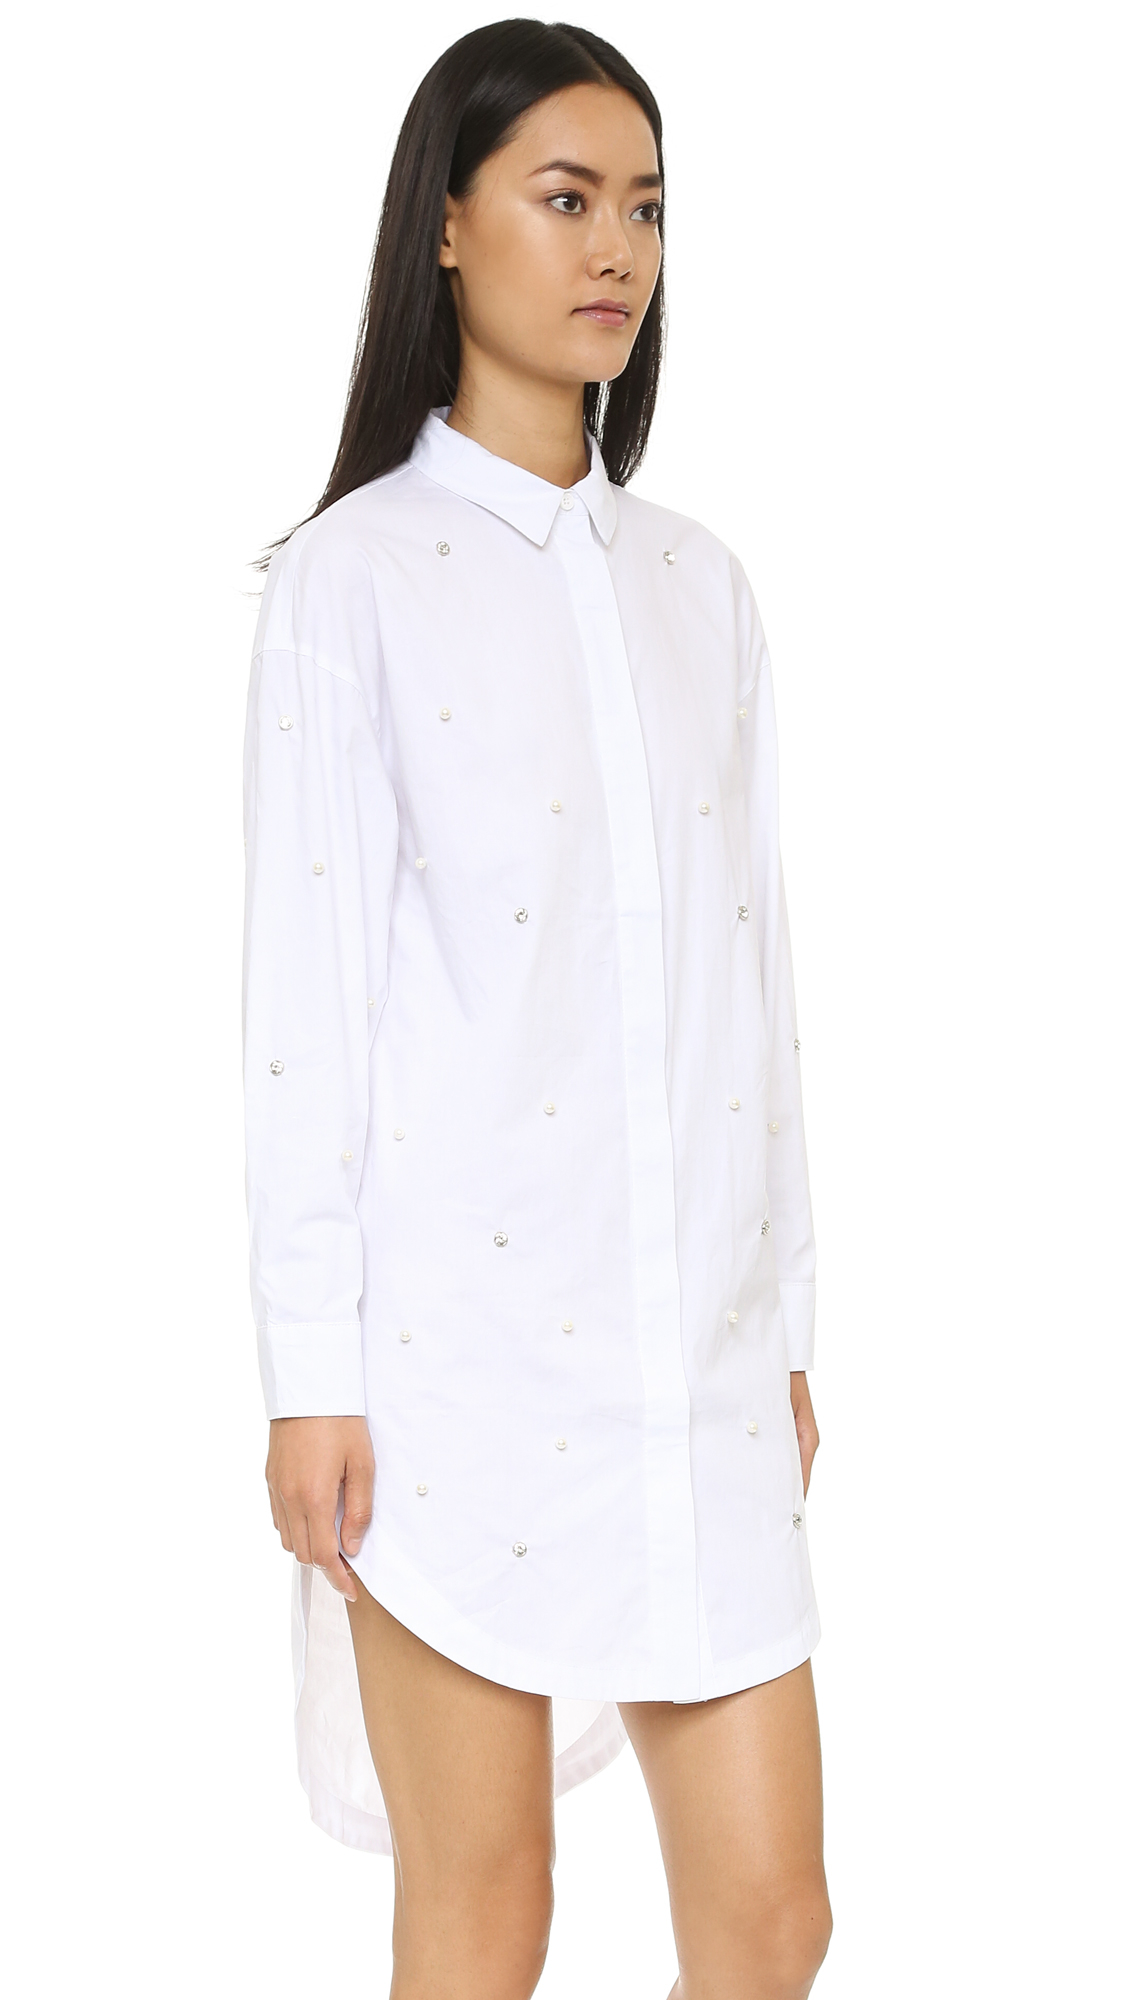 Endless rose Shirtdress - White in White | Lyst